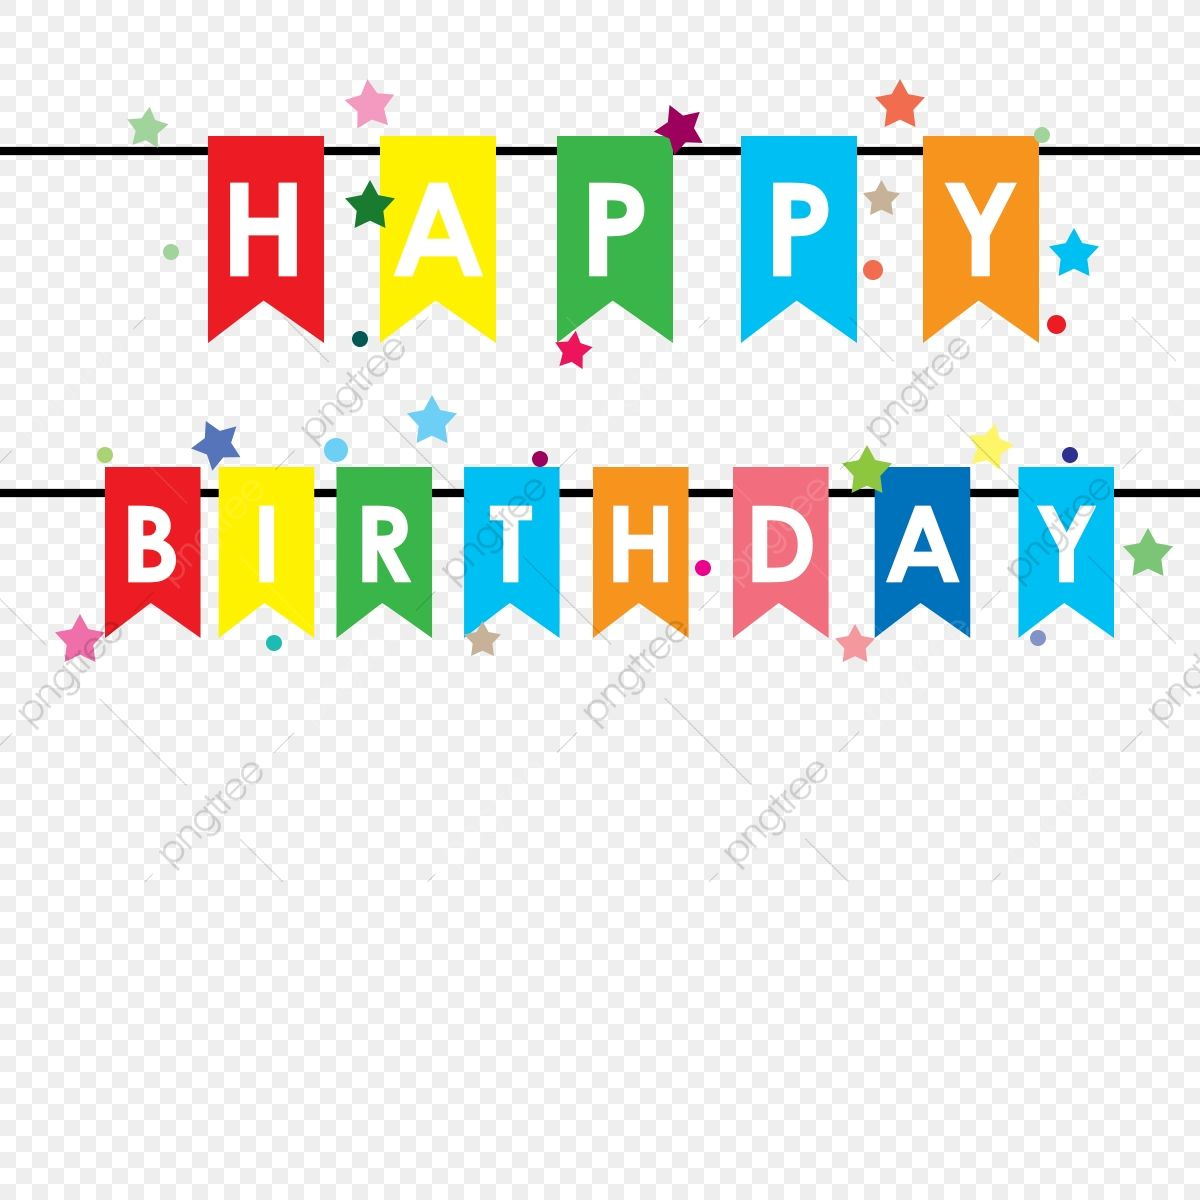 Pin By Best Image Banner Design On Excel Dashboard Templates In 2020 Birthday Banner Template Birthday Banner Design 1st Birthday Banners